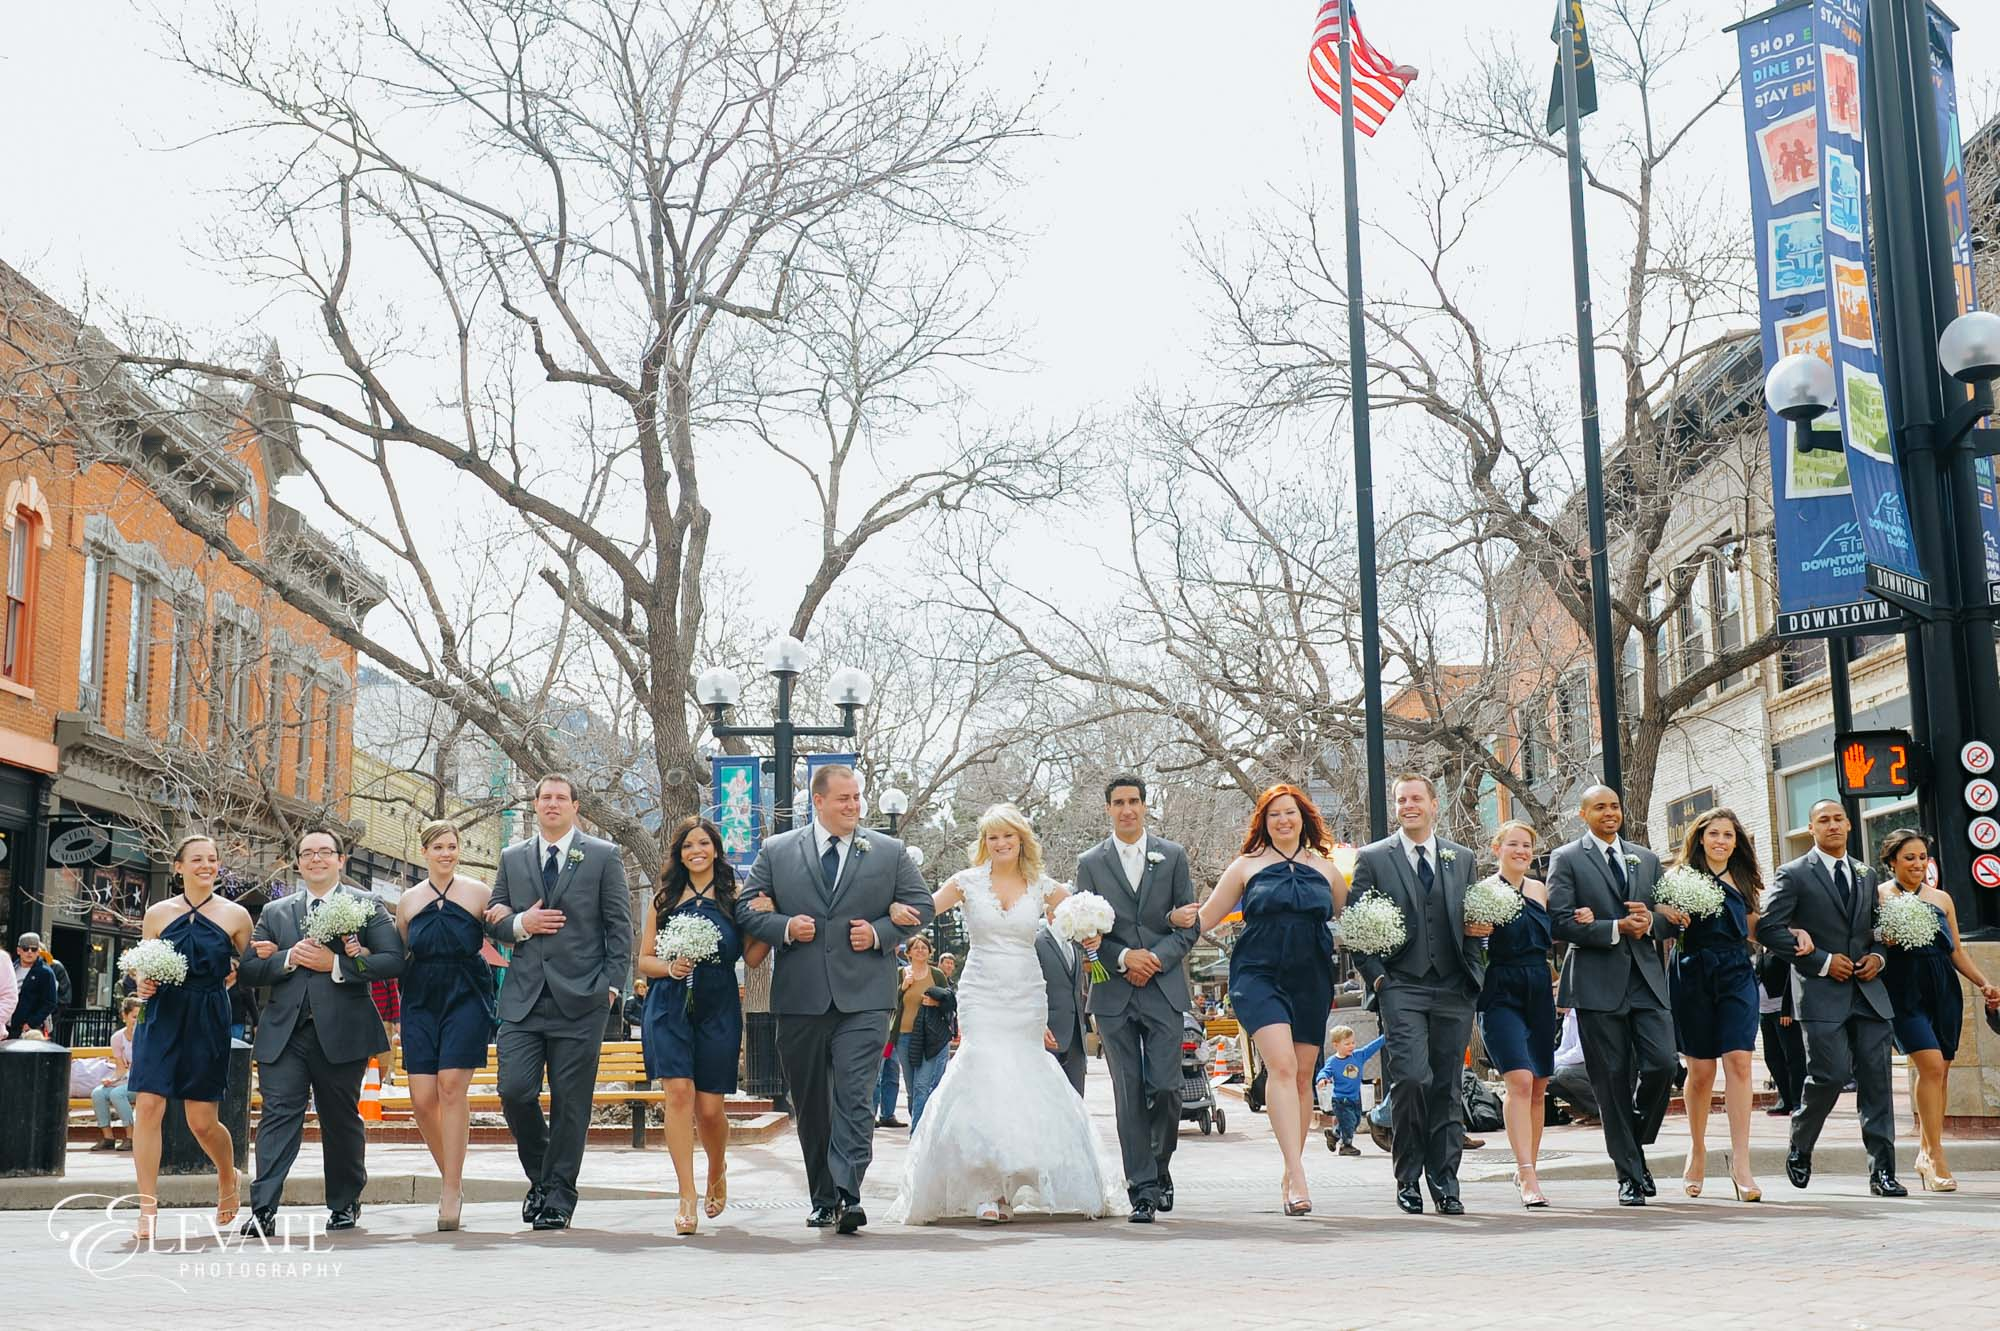 Bridal party on street